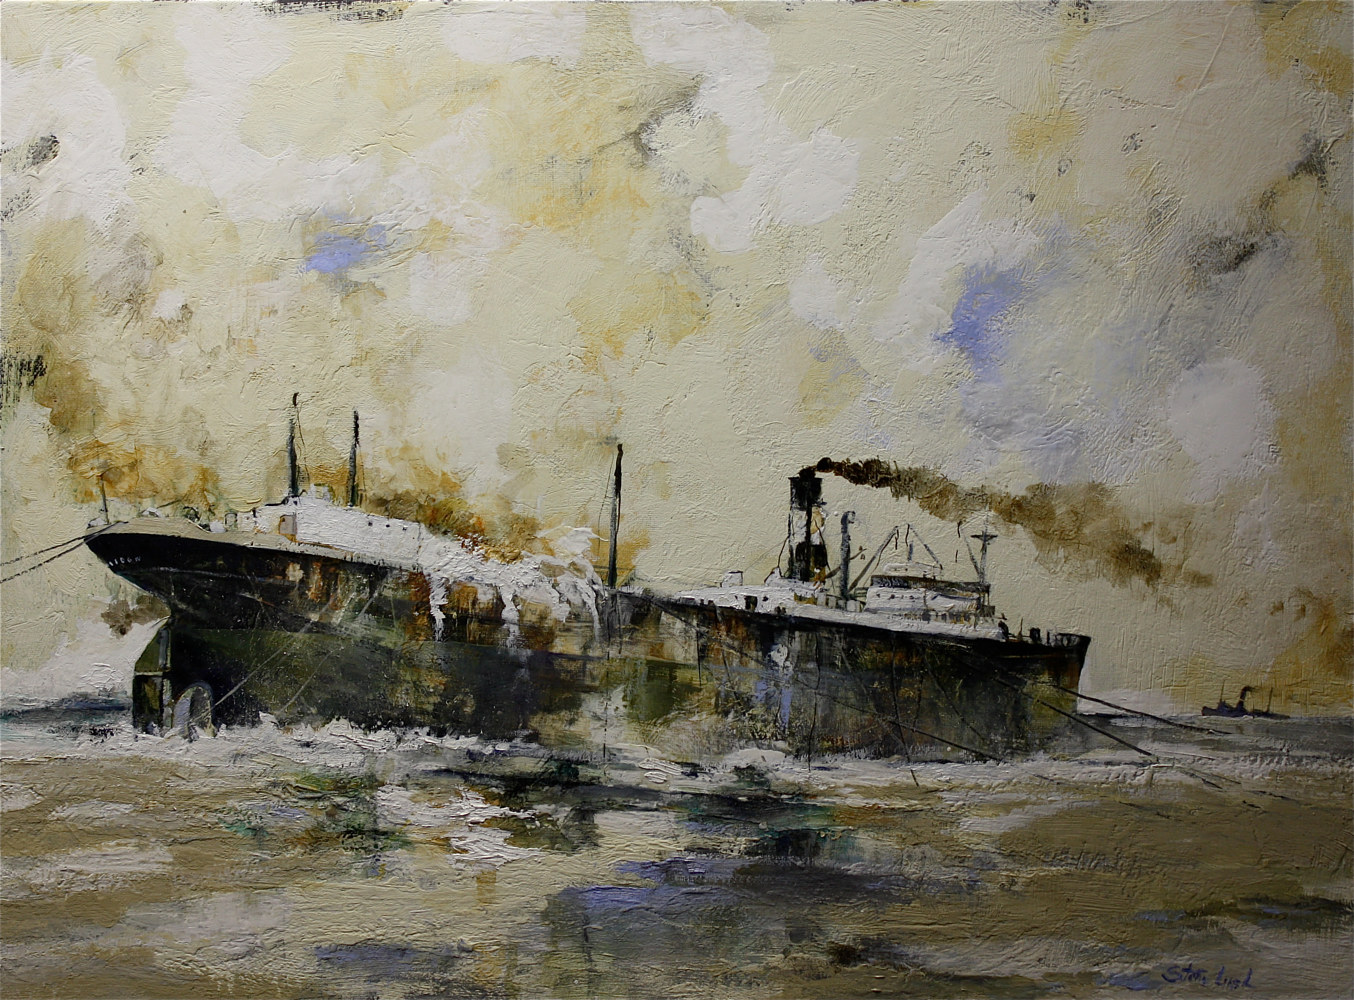 Oil painting Aground! Available at the Bowersock Gallery, Provincetown, MA. by Nella Lush